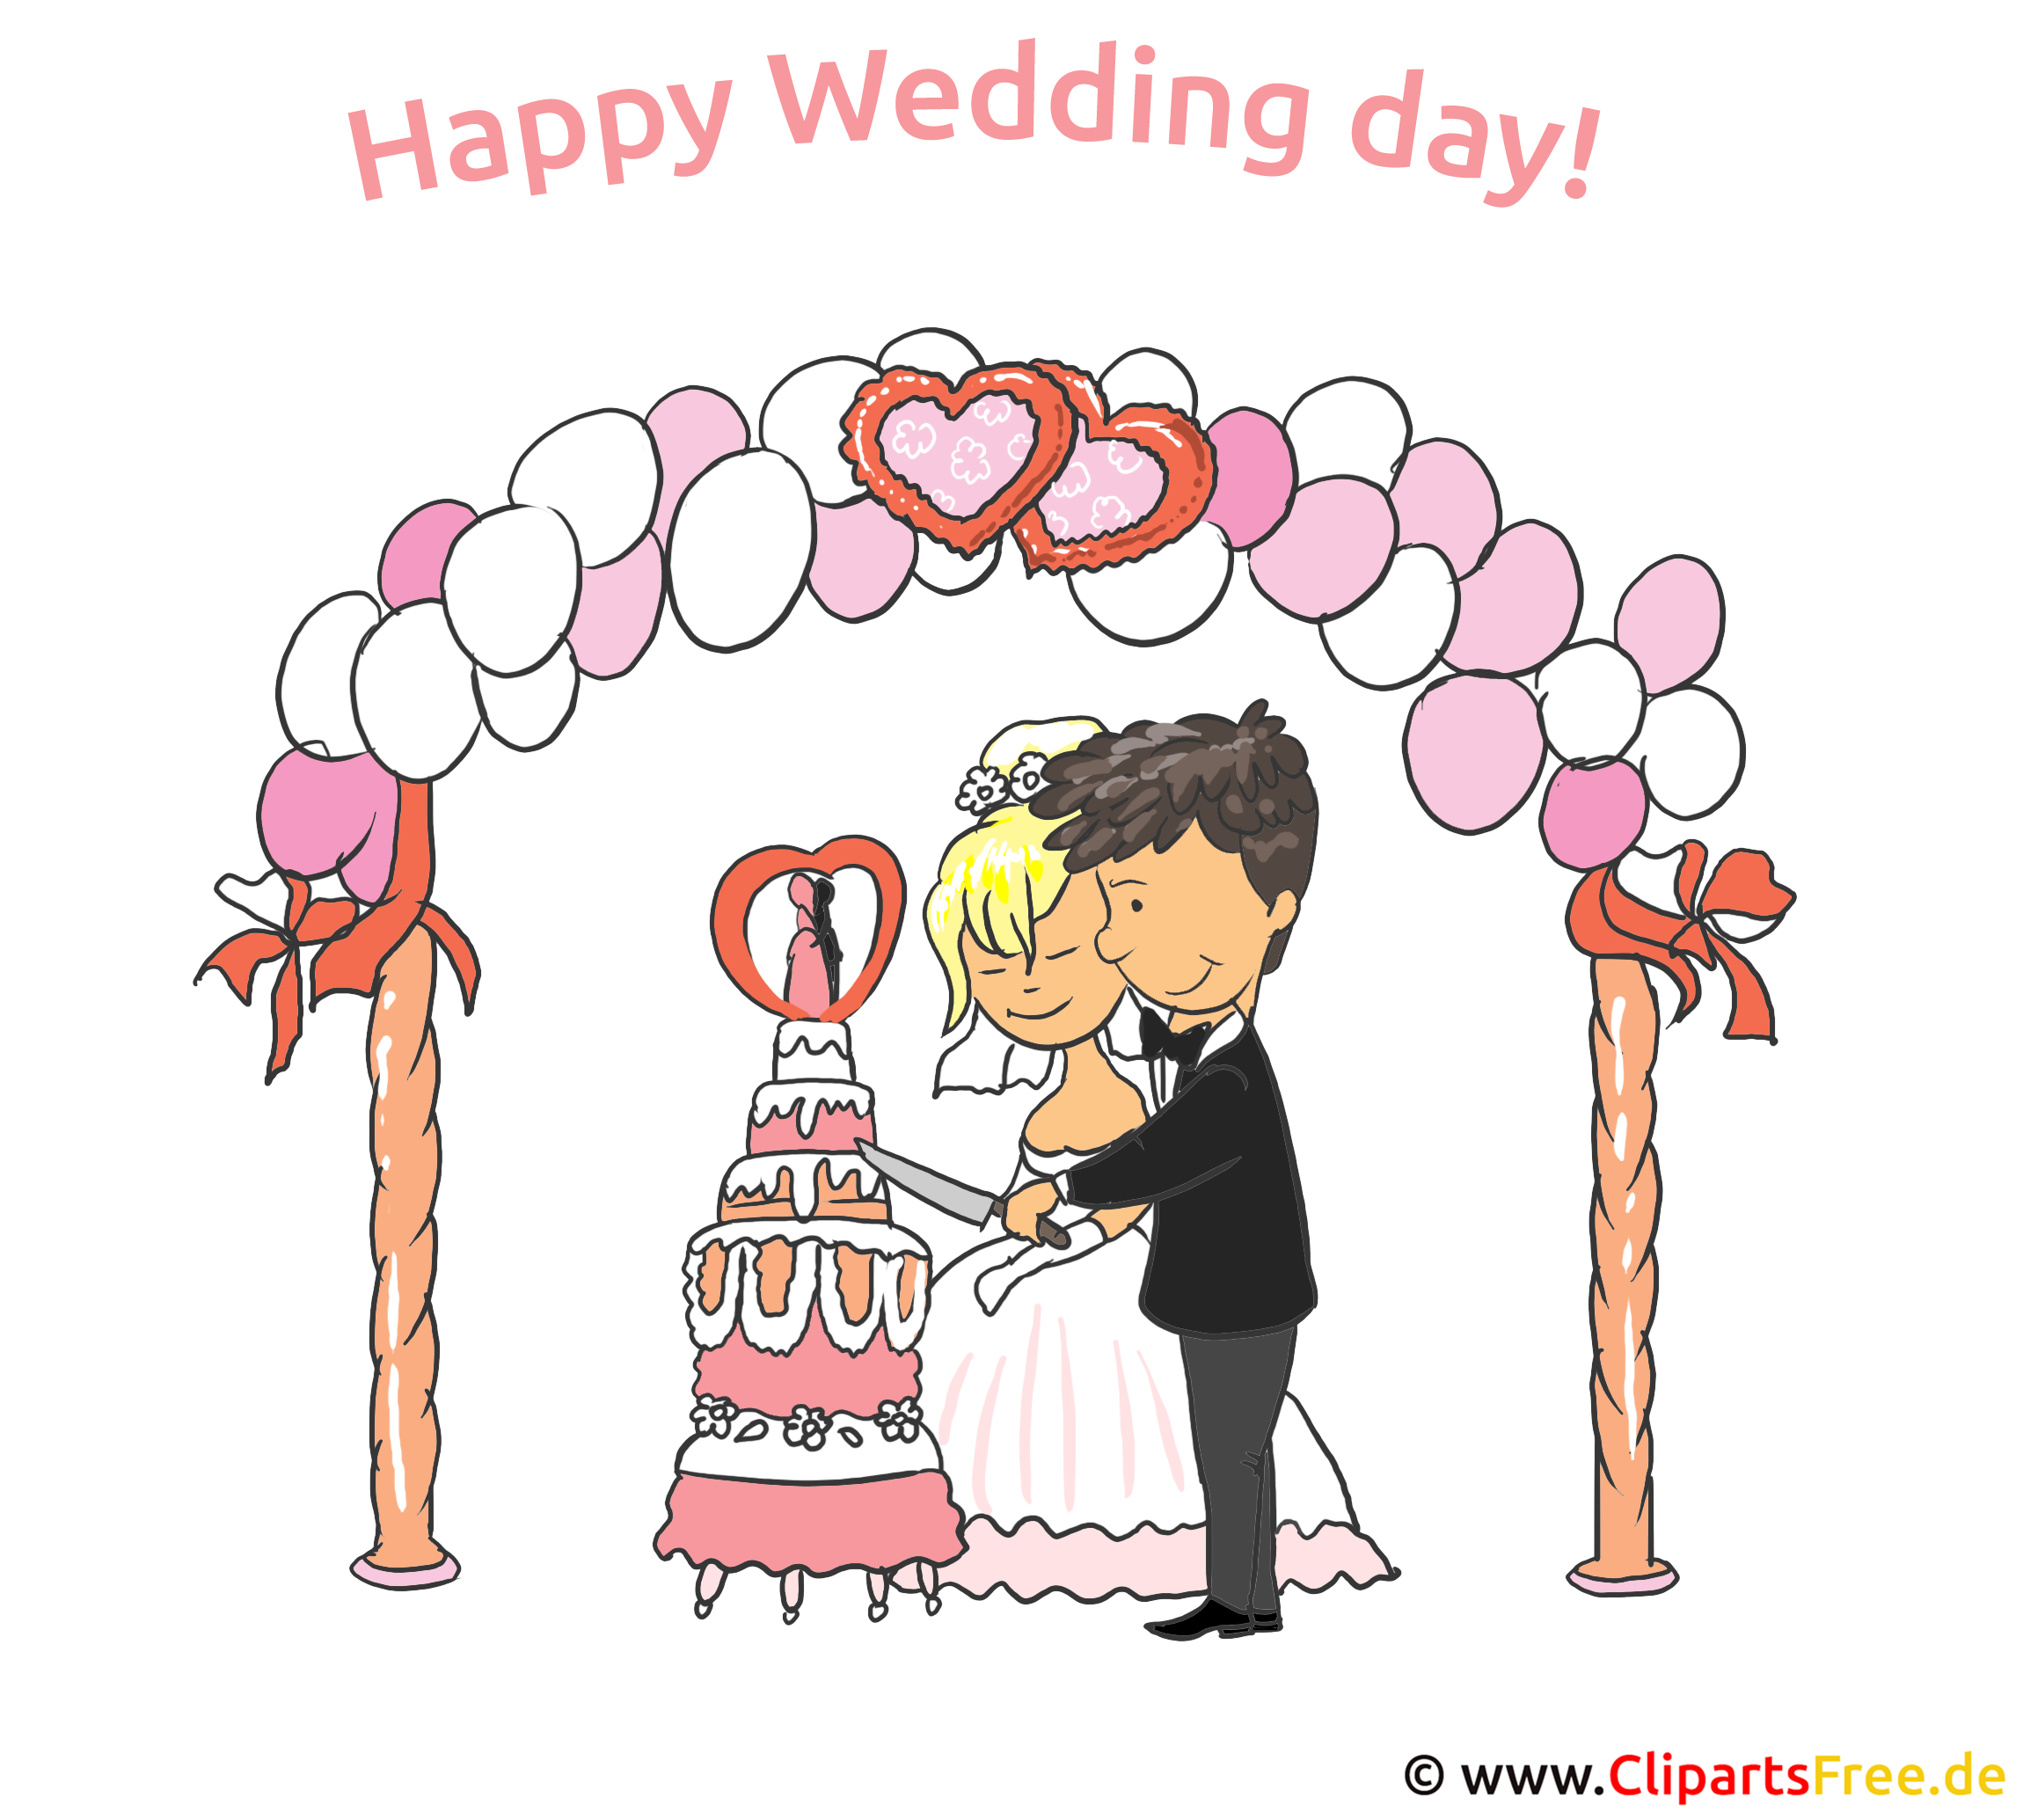 Happy Wedding Day Clip Art, eCard, Cartoon